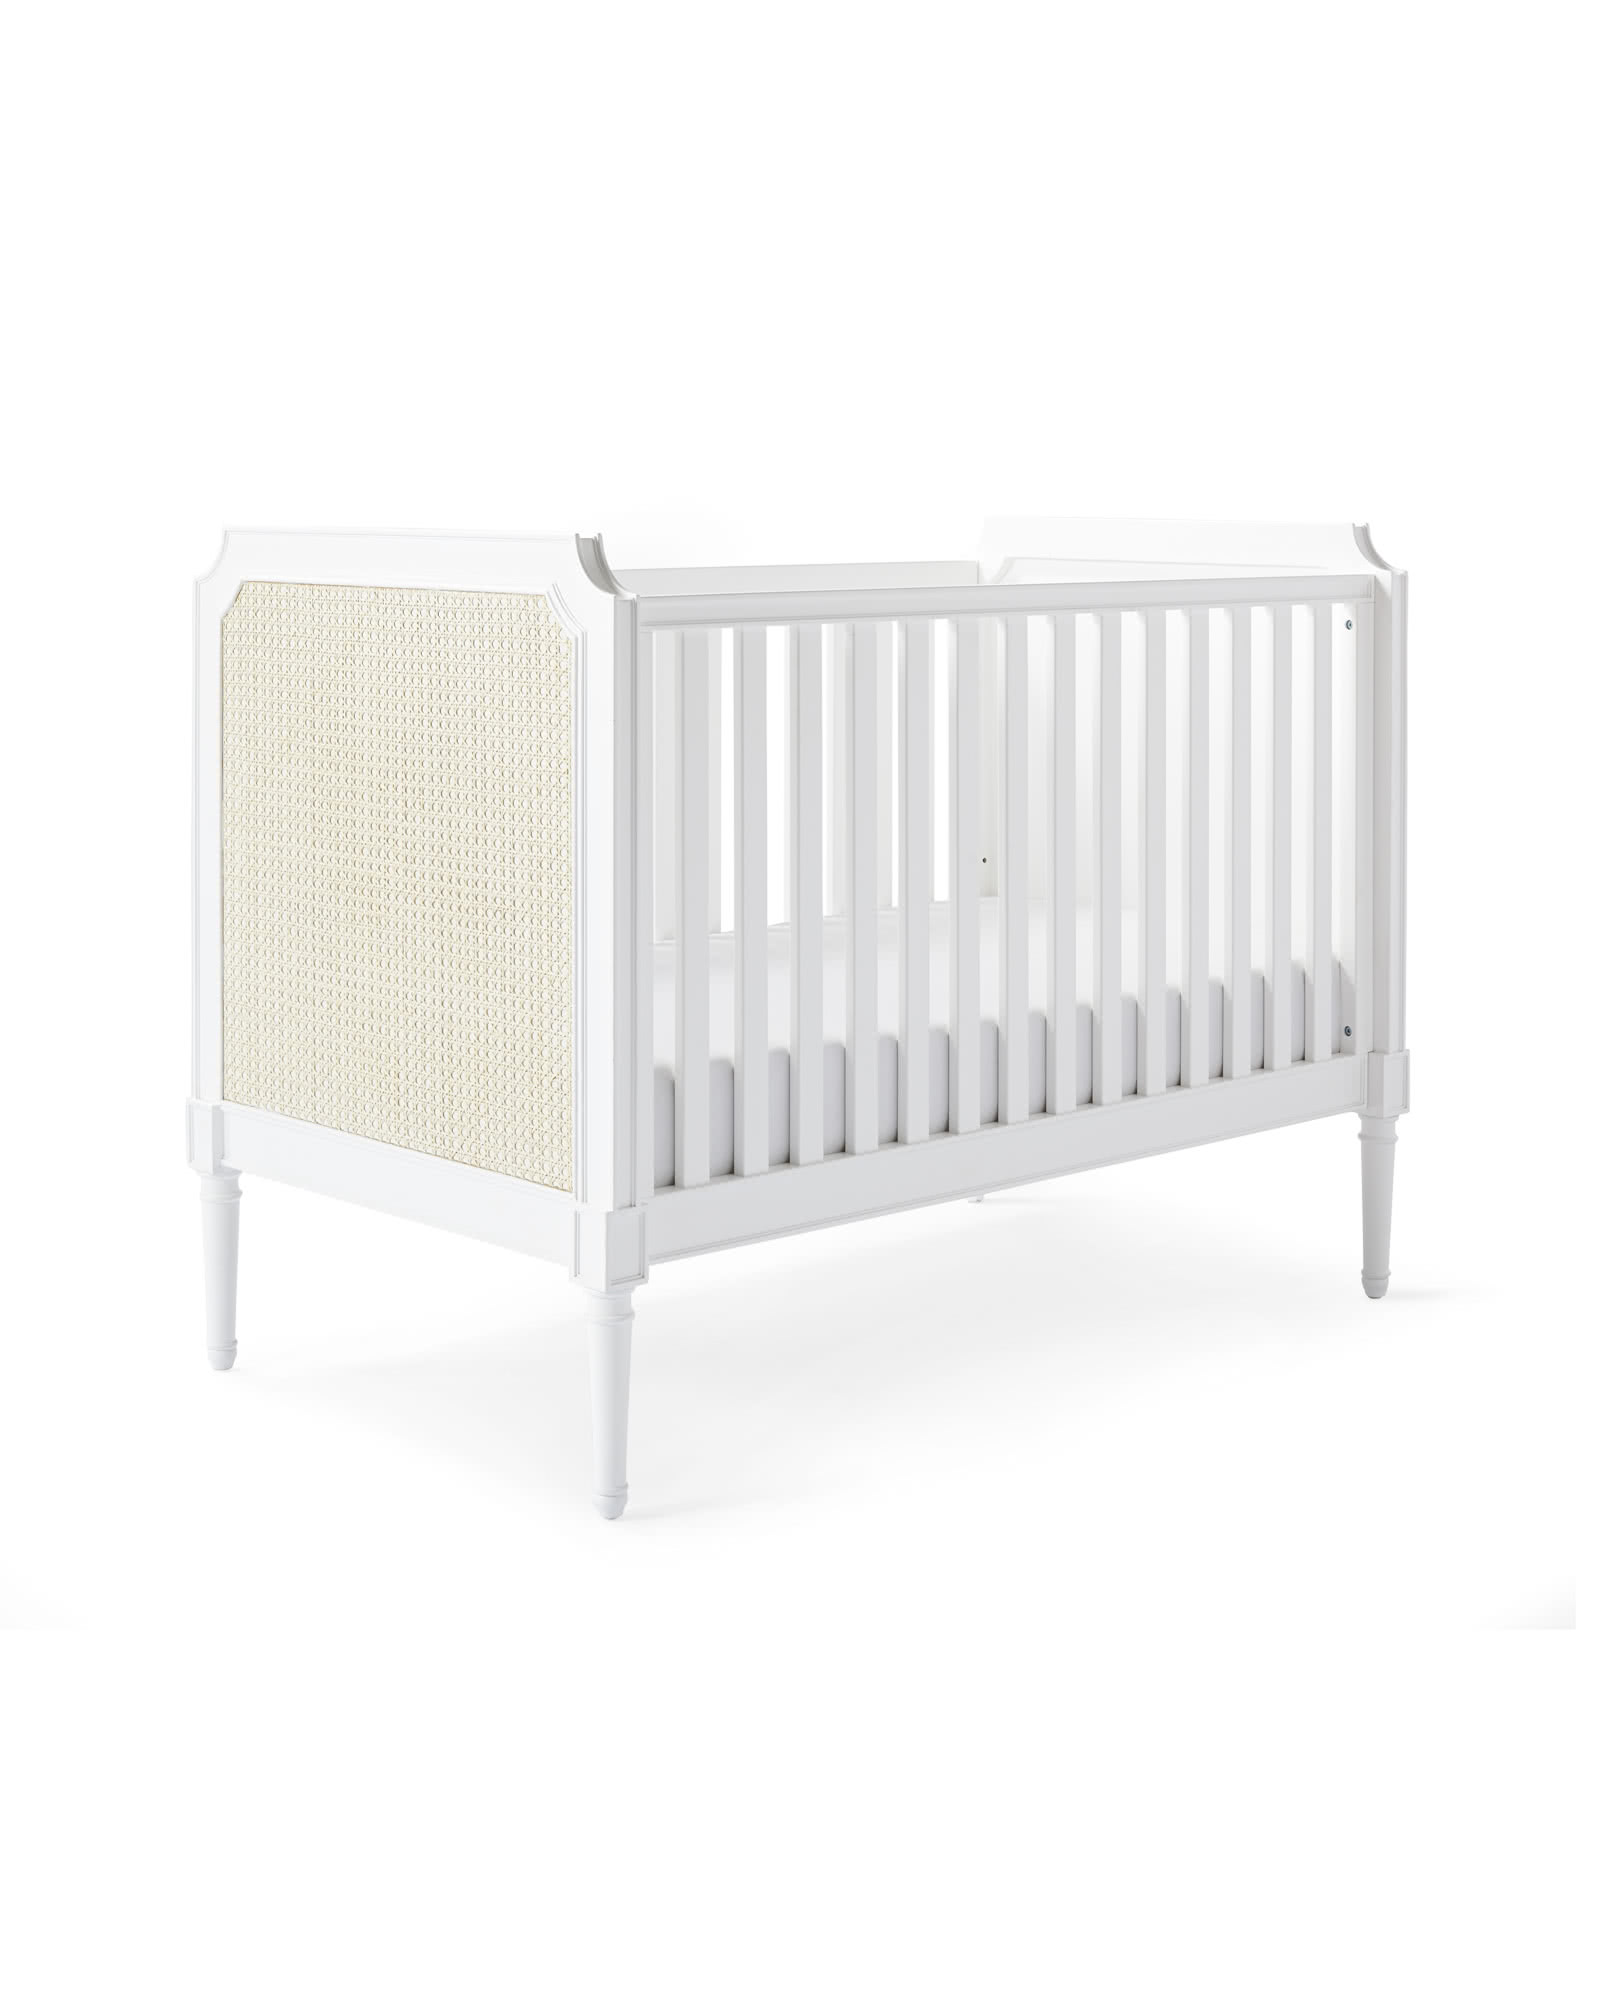 Harbour Cane Convertible Crib,